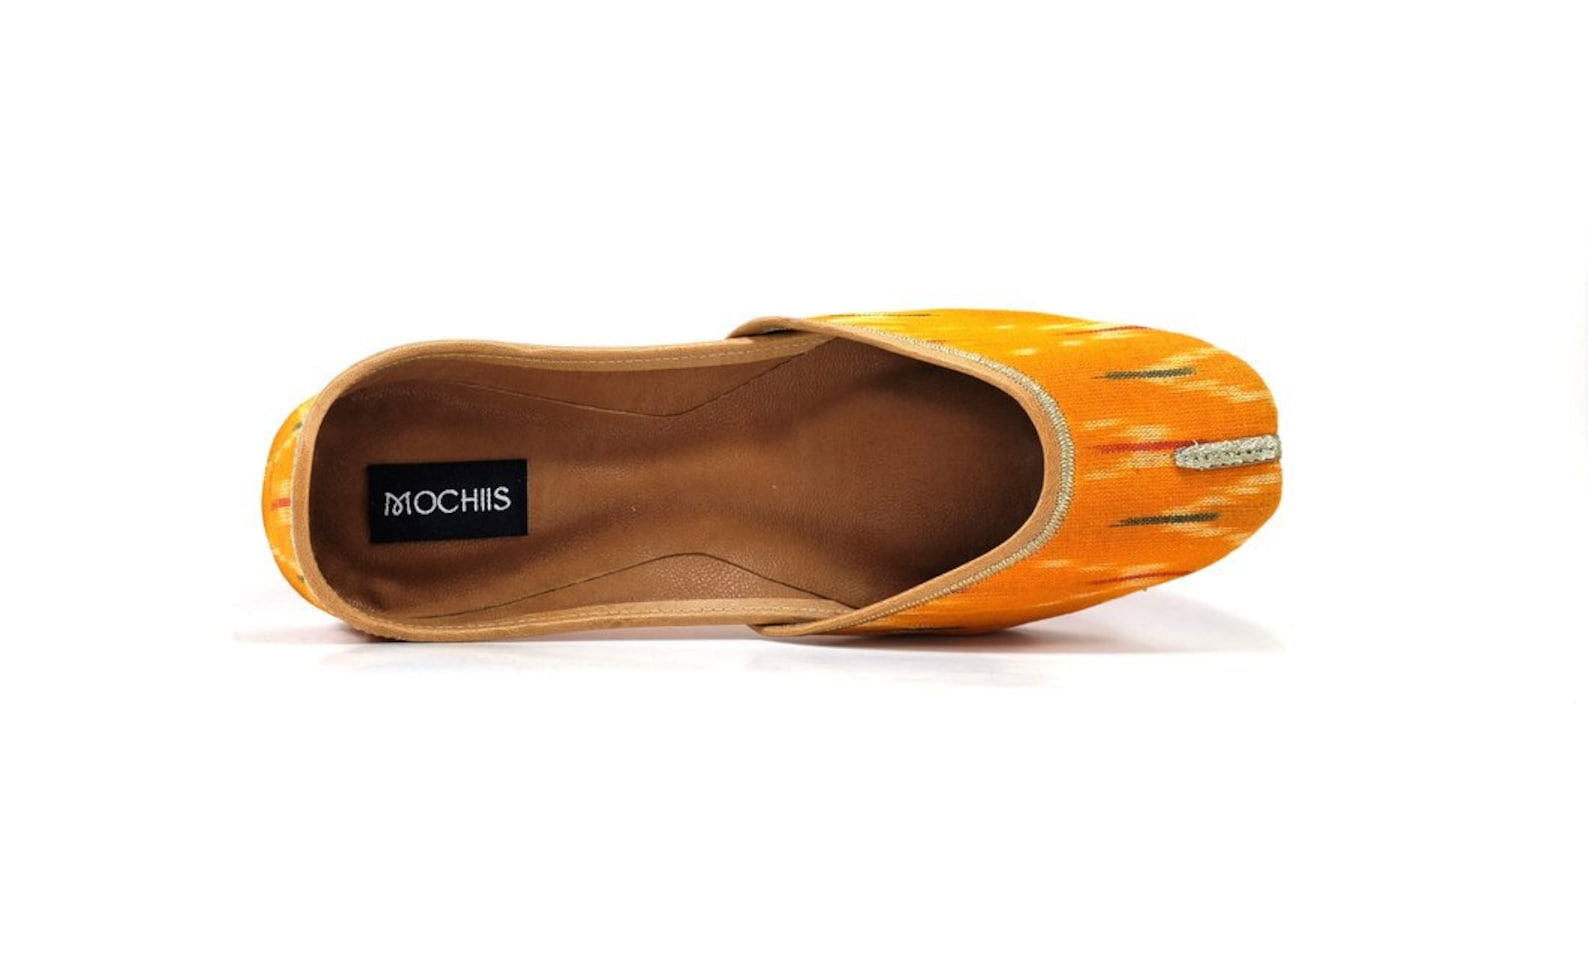 ochre - handmade yellow ikat printed leather ballet flats - traditional jutti / khussa / mojari with a contemporary twist